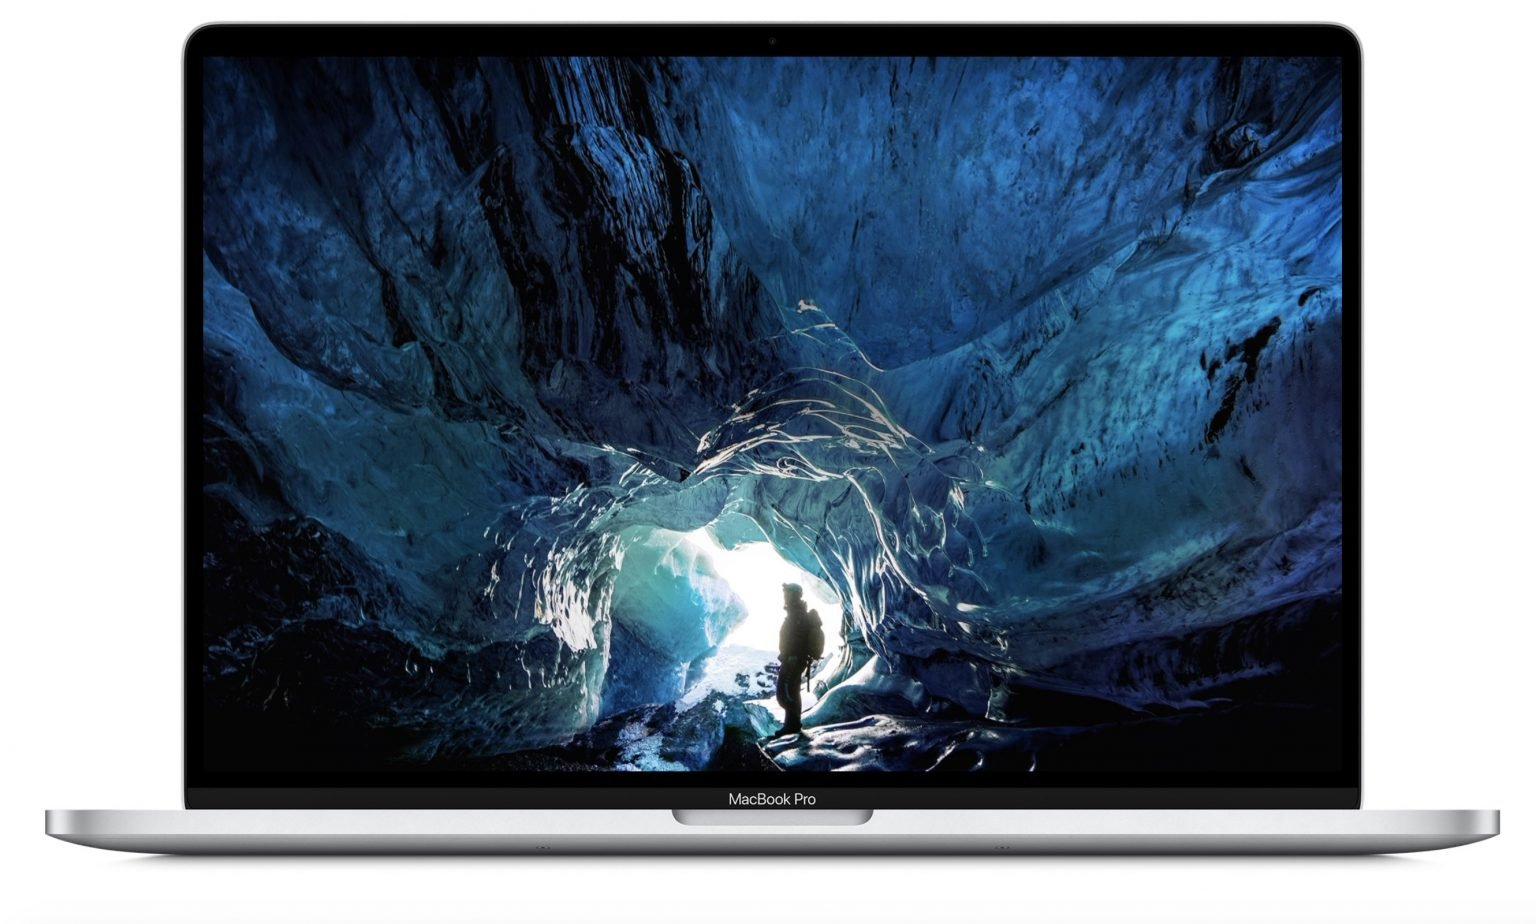 MacBook Pro 13-inch will upgrade to 14.1-inch with mini-LED display